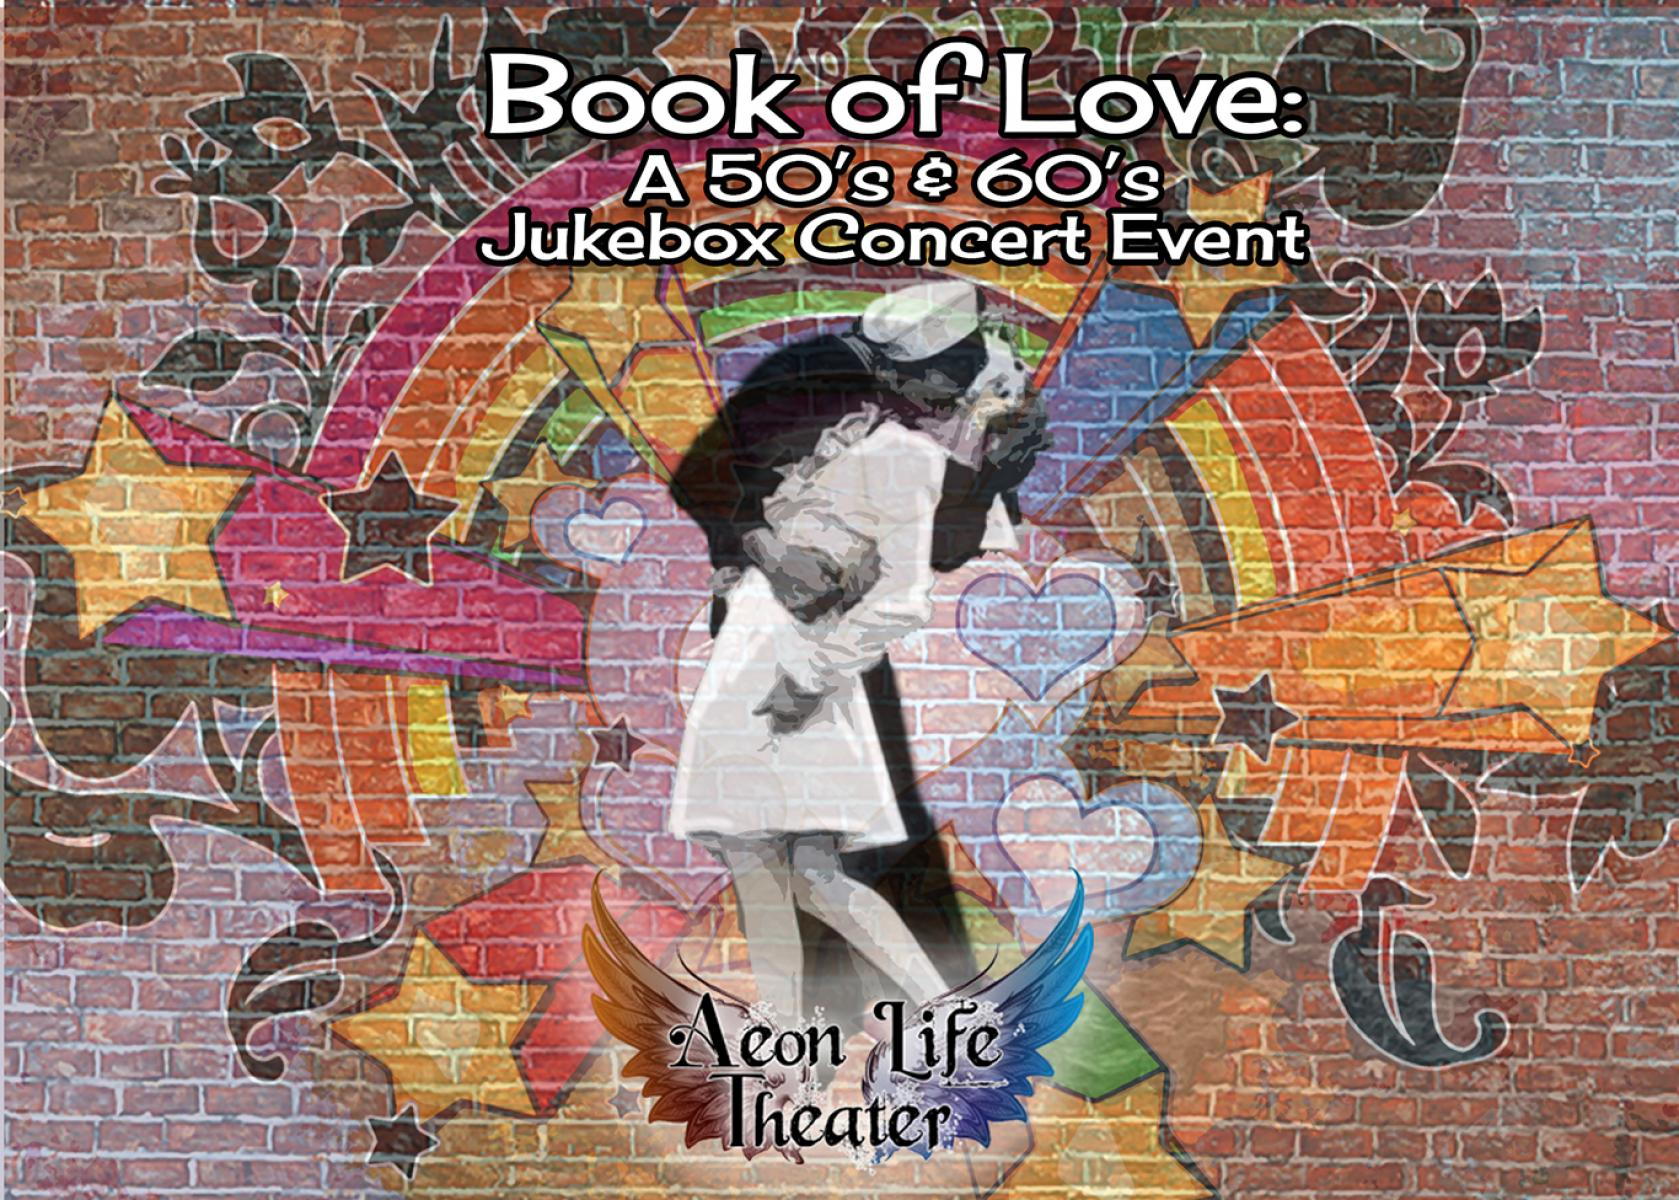 Book of Love: A 50's/60's Jukebox Concert Event